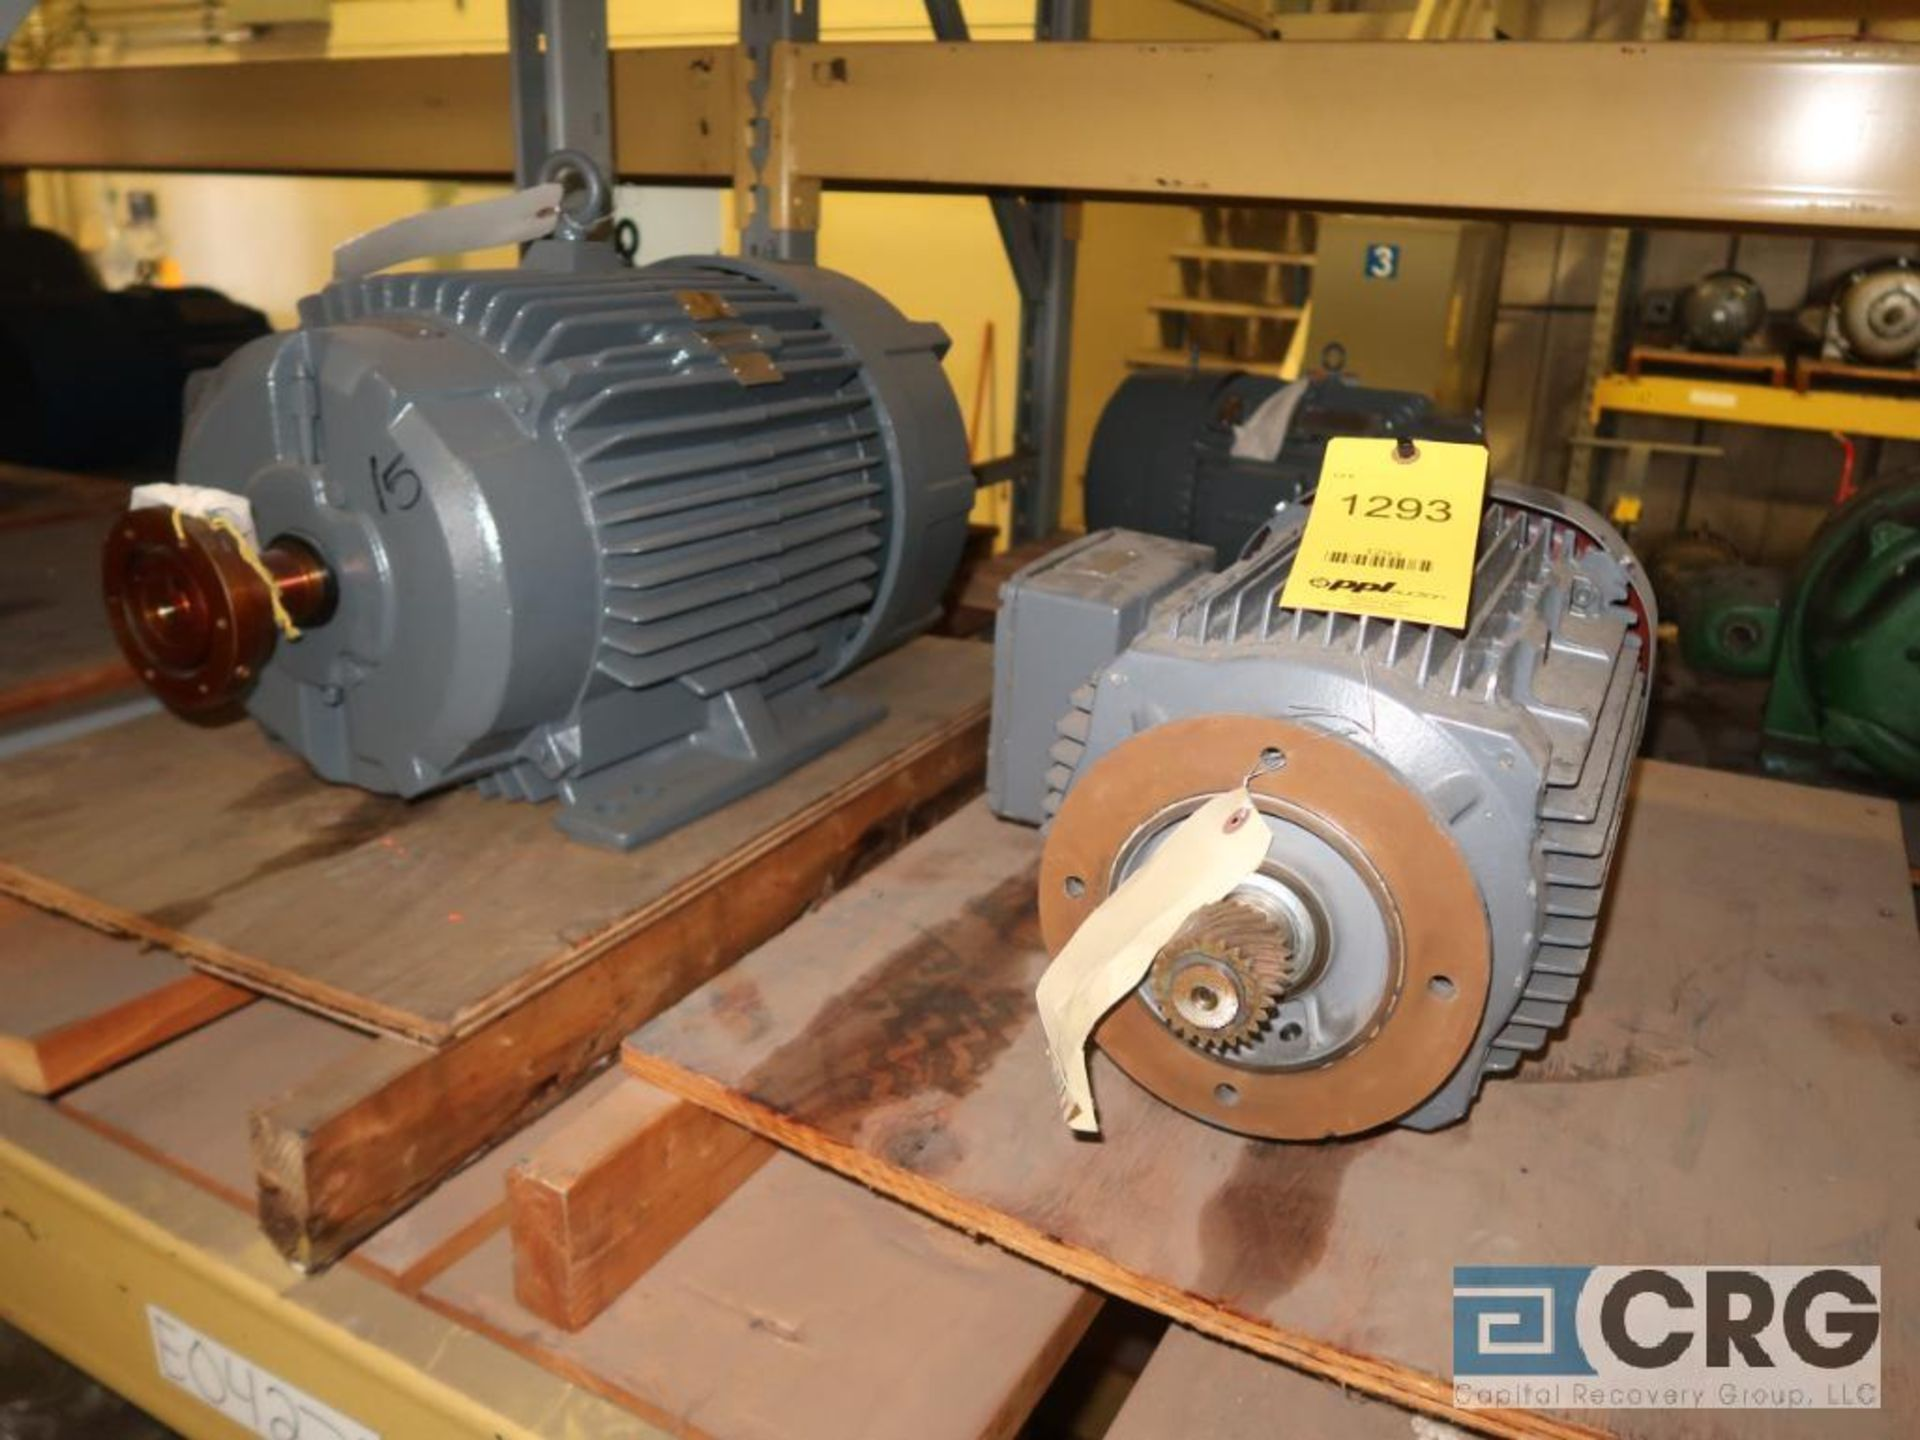 Lot of (29) assorted 15 HP, 10 HP, and 7.5 HP motors on (7) shelves, some with gear drives (Motor